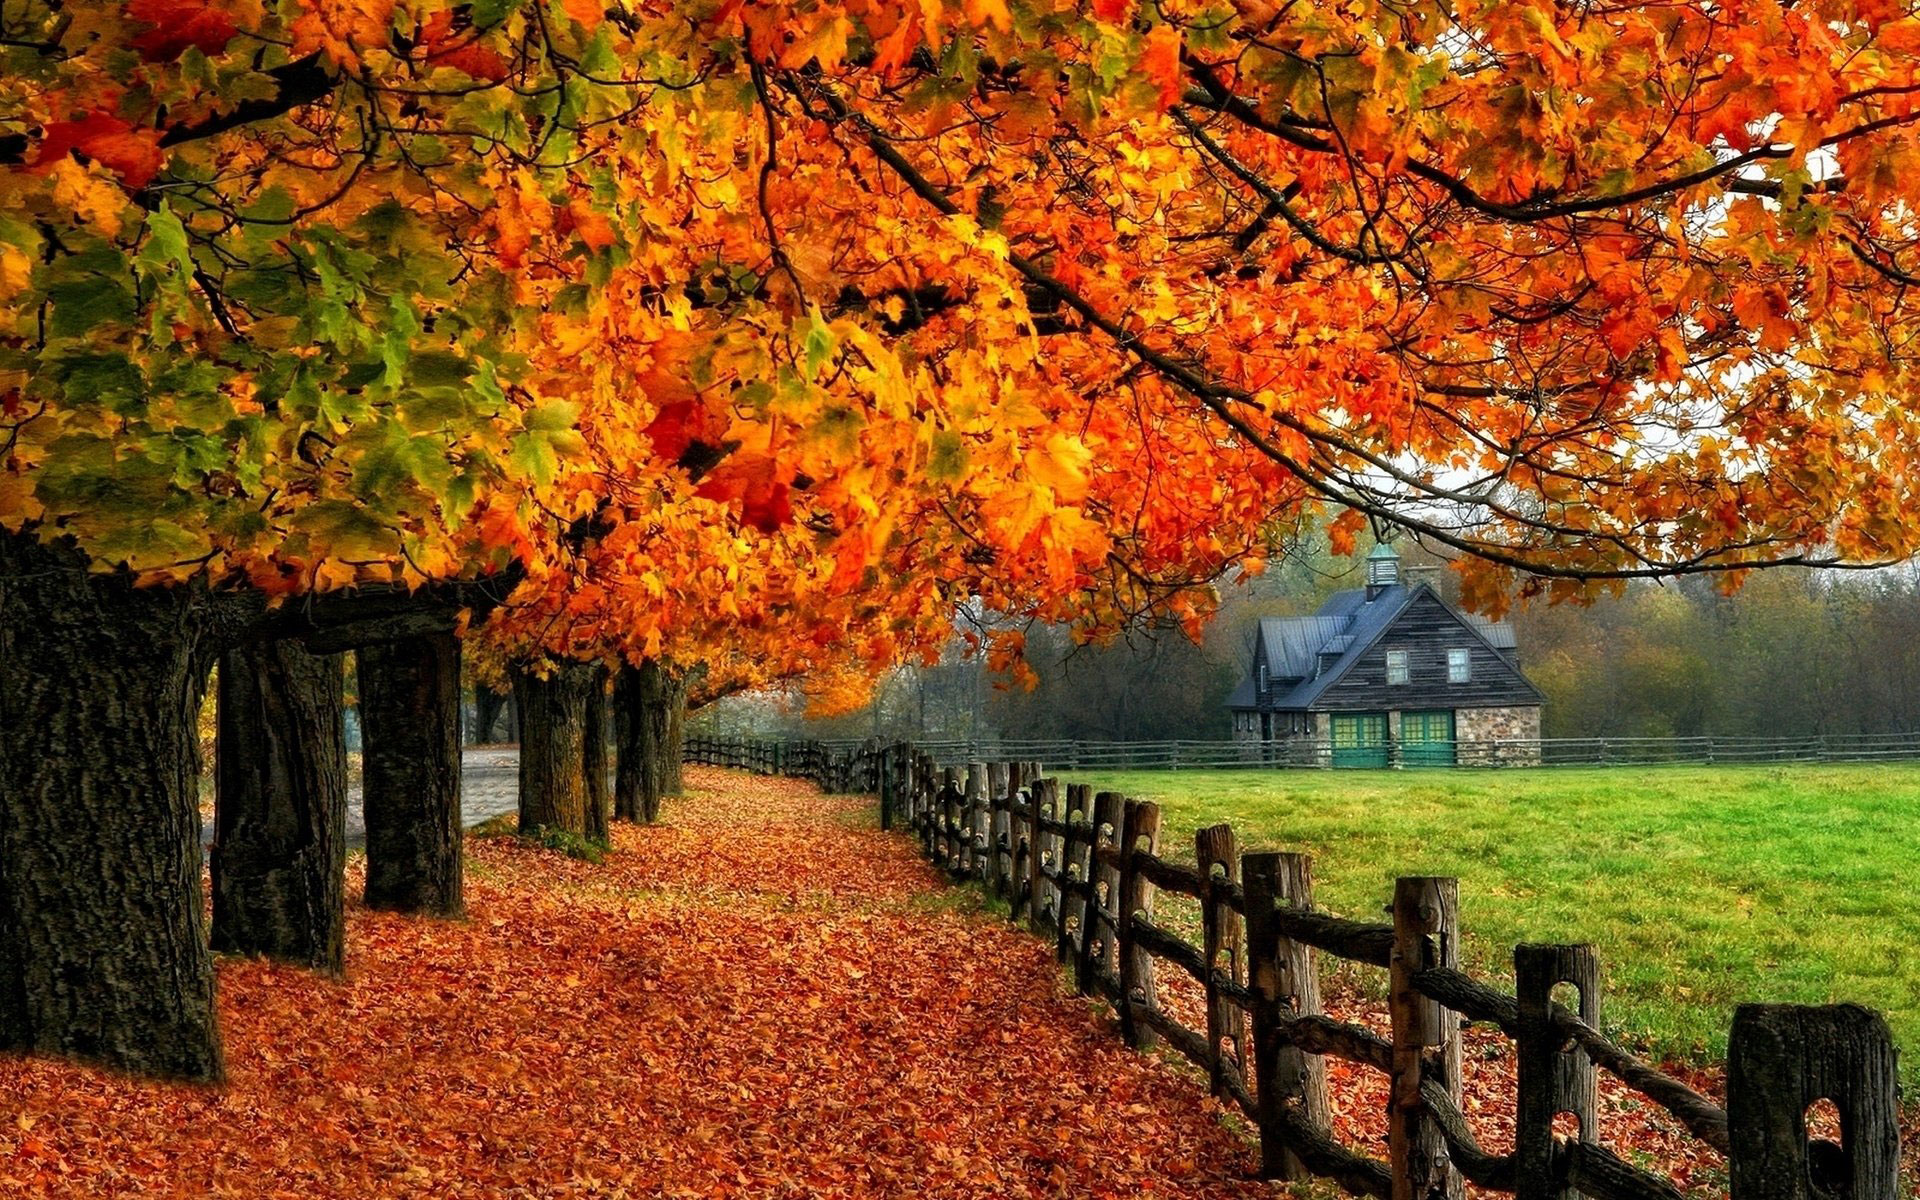 New England Fall Foliage Desktop Wallpaper Autumn Wallpaper Examples For Your Desktop Background